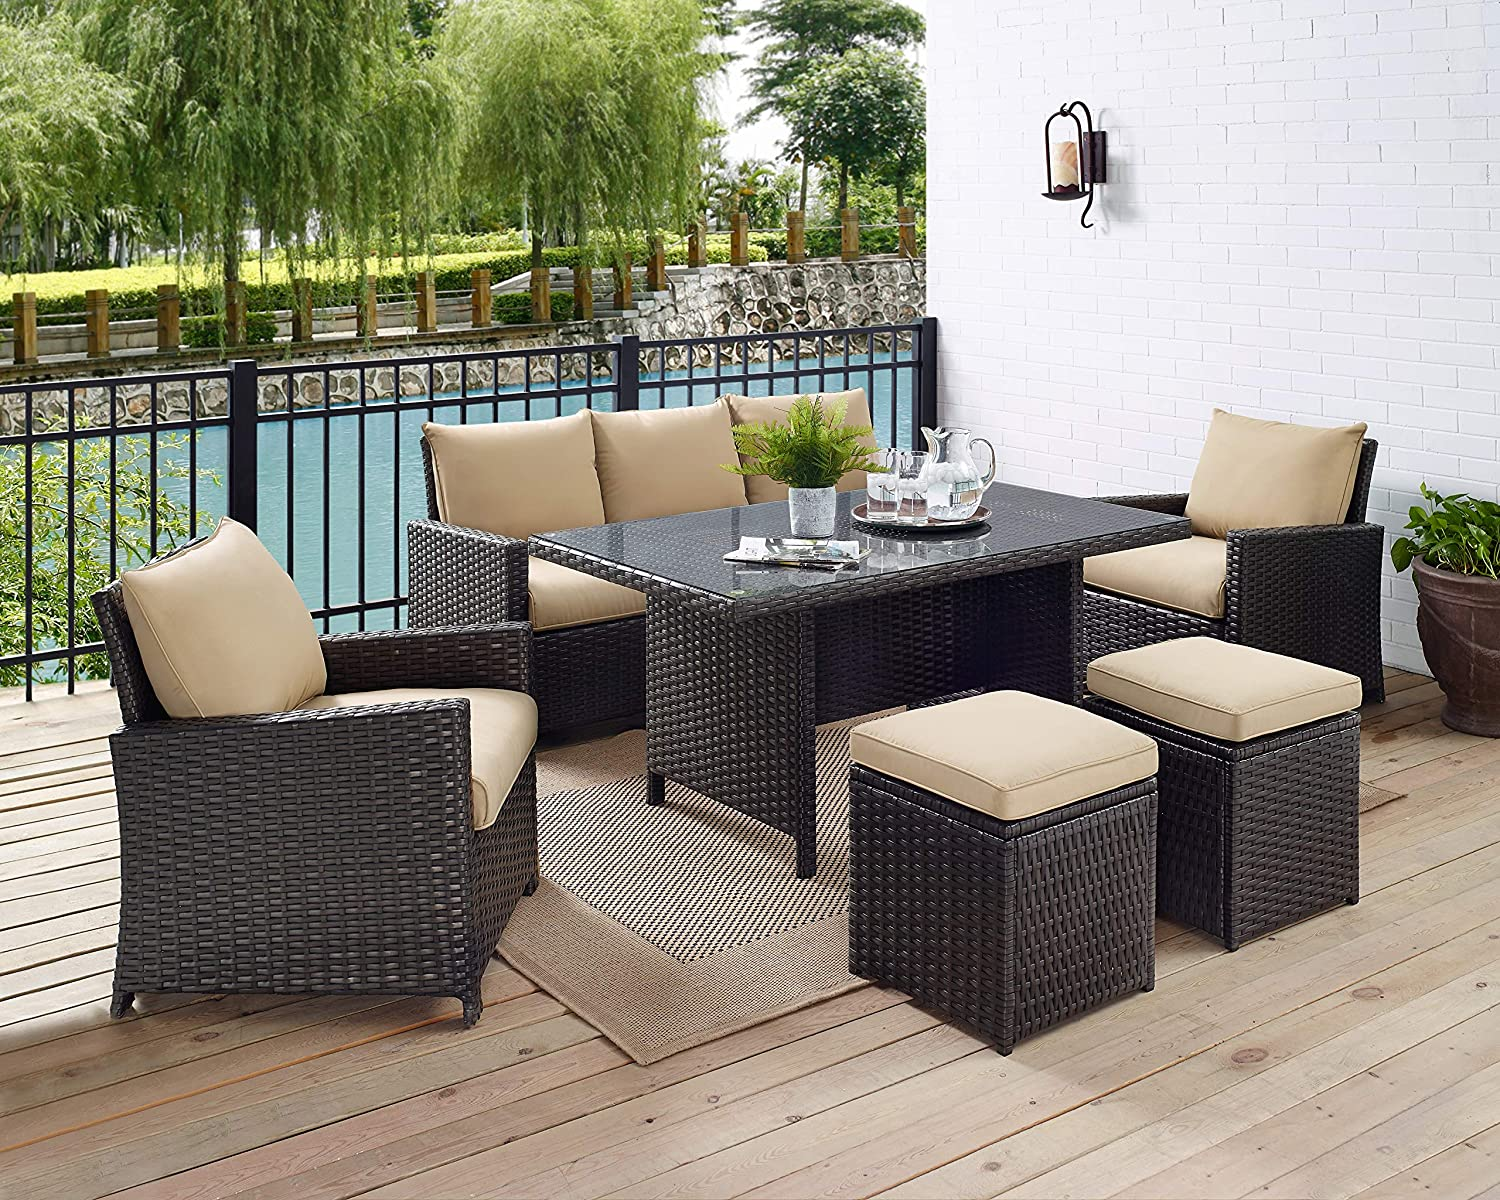 Glenwillow Home 6-Piece Wicker Patio Dining Set